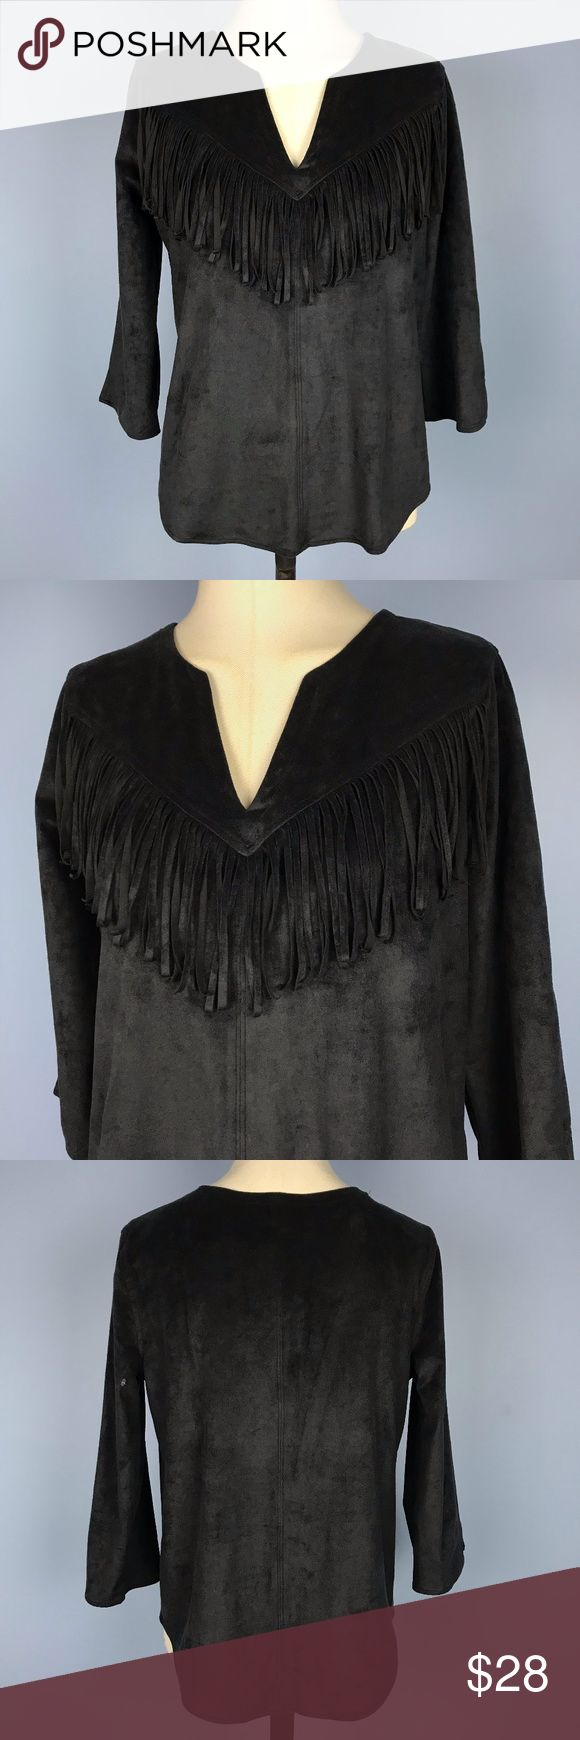 """Express Black Faux Suede Fringe Blouse Top Small Express Women's Top Size S Faux Suede Fringe Blouse Black  Measurements were taken on one side with garment laid flat.  Sleeve (shoulder seam to the end of the cuff): 18""""  Chest (Armpit to armpit): 19""""  Length (Base of neck to the bottom hem): 23.5"""" Express Tops Blouses"""